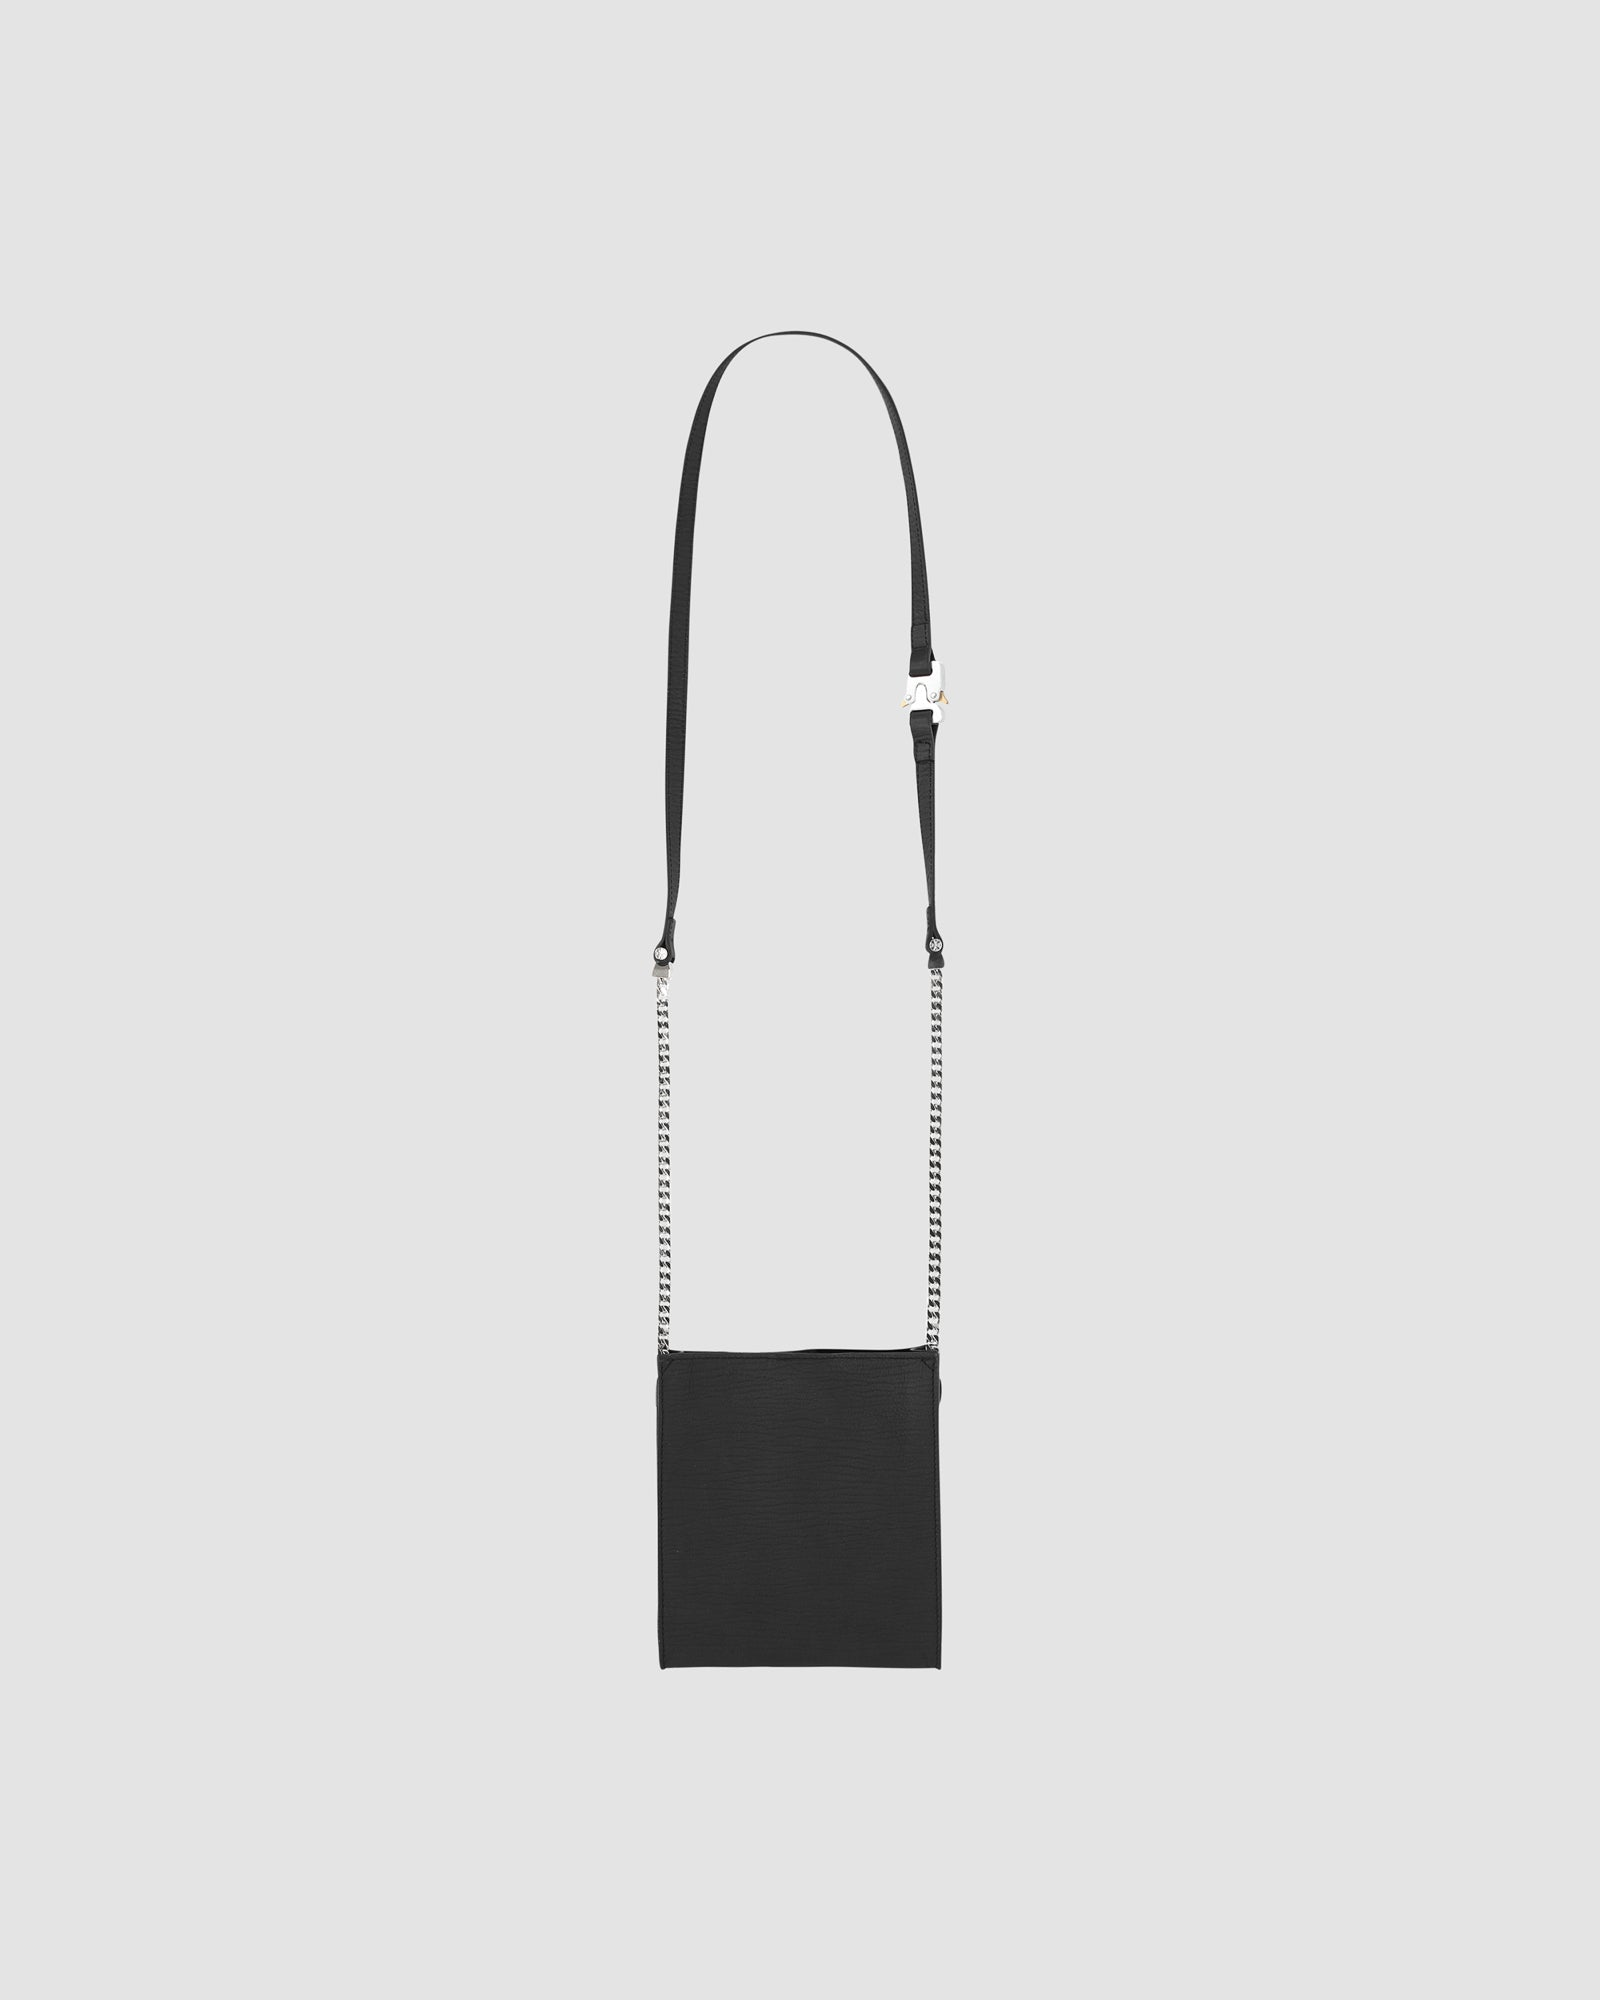 1017 ALYX 9SM | NEW PASSPORT CROSSBODY BAG | Bag | Bag Online, Bags, BLACK, Google Shopping, Man, S20, SHOULDER BAGS, SS20, UNISEX, Woman